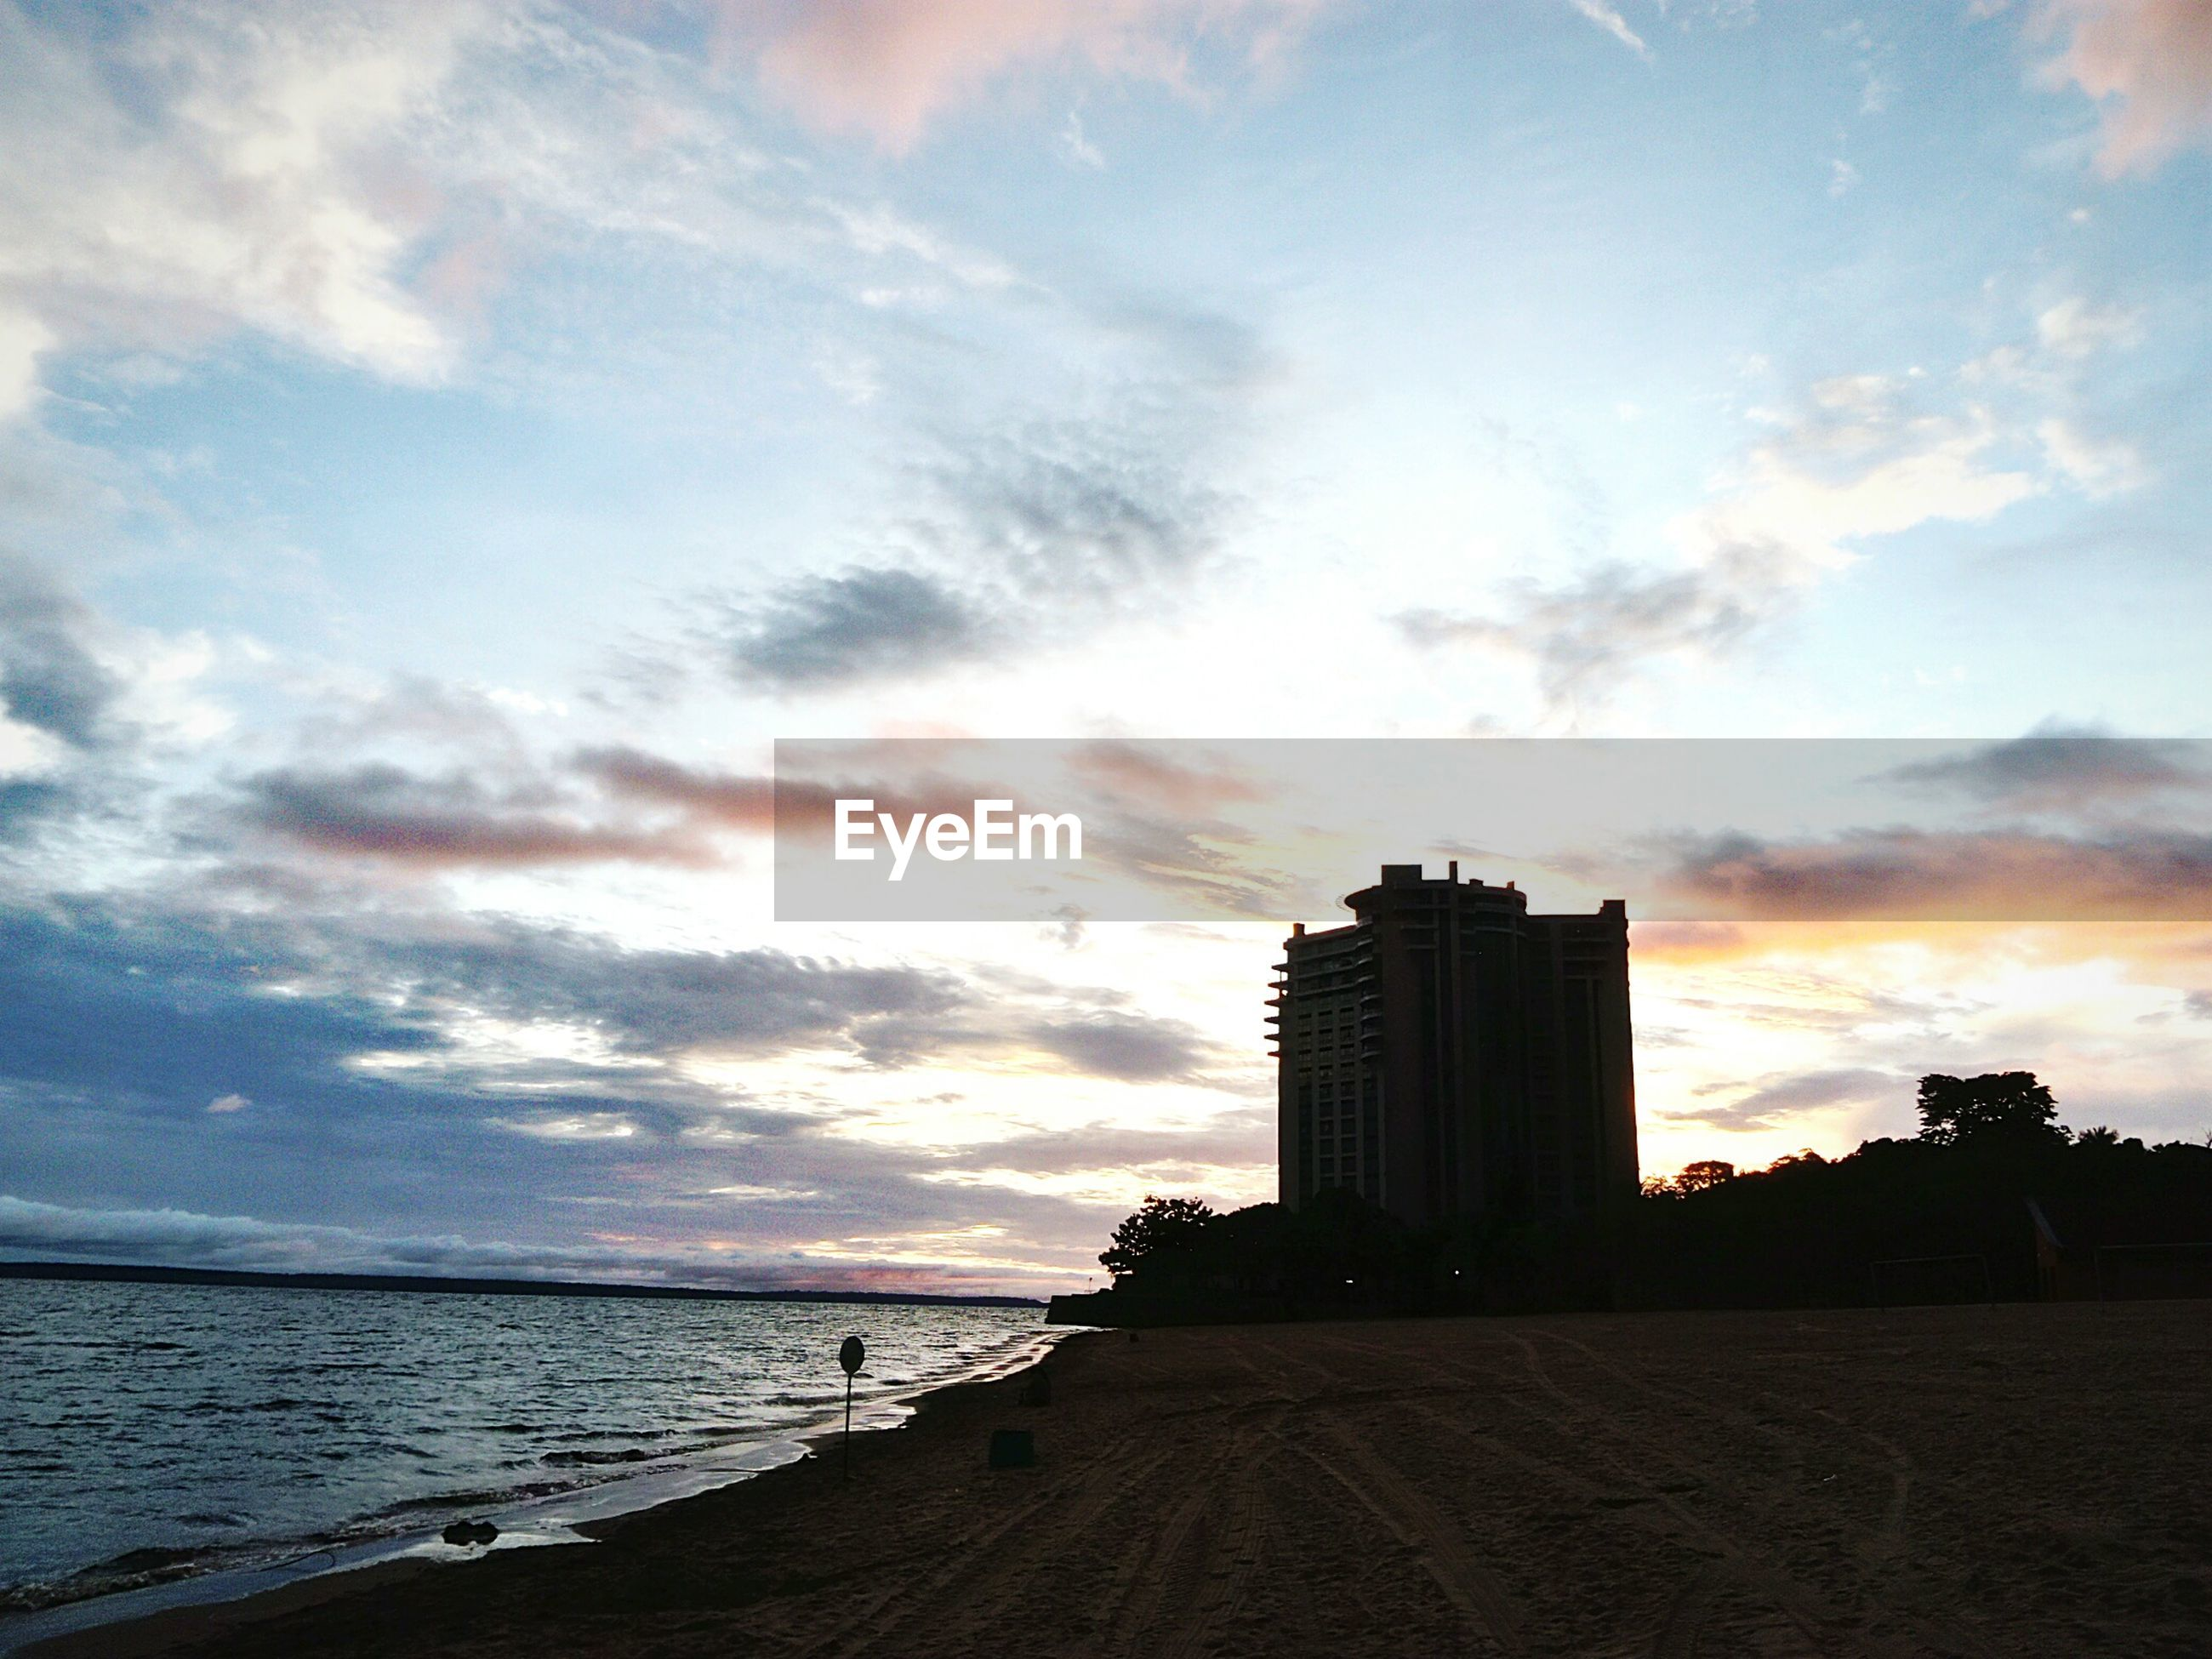 sky, cloud - sky, water, sea, beach, architecture, built structure, building exterior, nature, land, scenics - nature, beauty in nature, horizon over water, horizon, outdoors, no people, sunset, building, sand, office building exterior, skyscraper